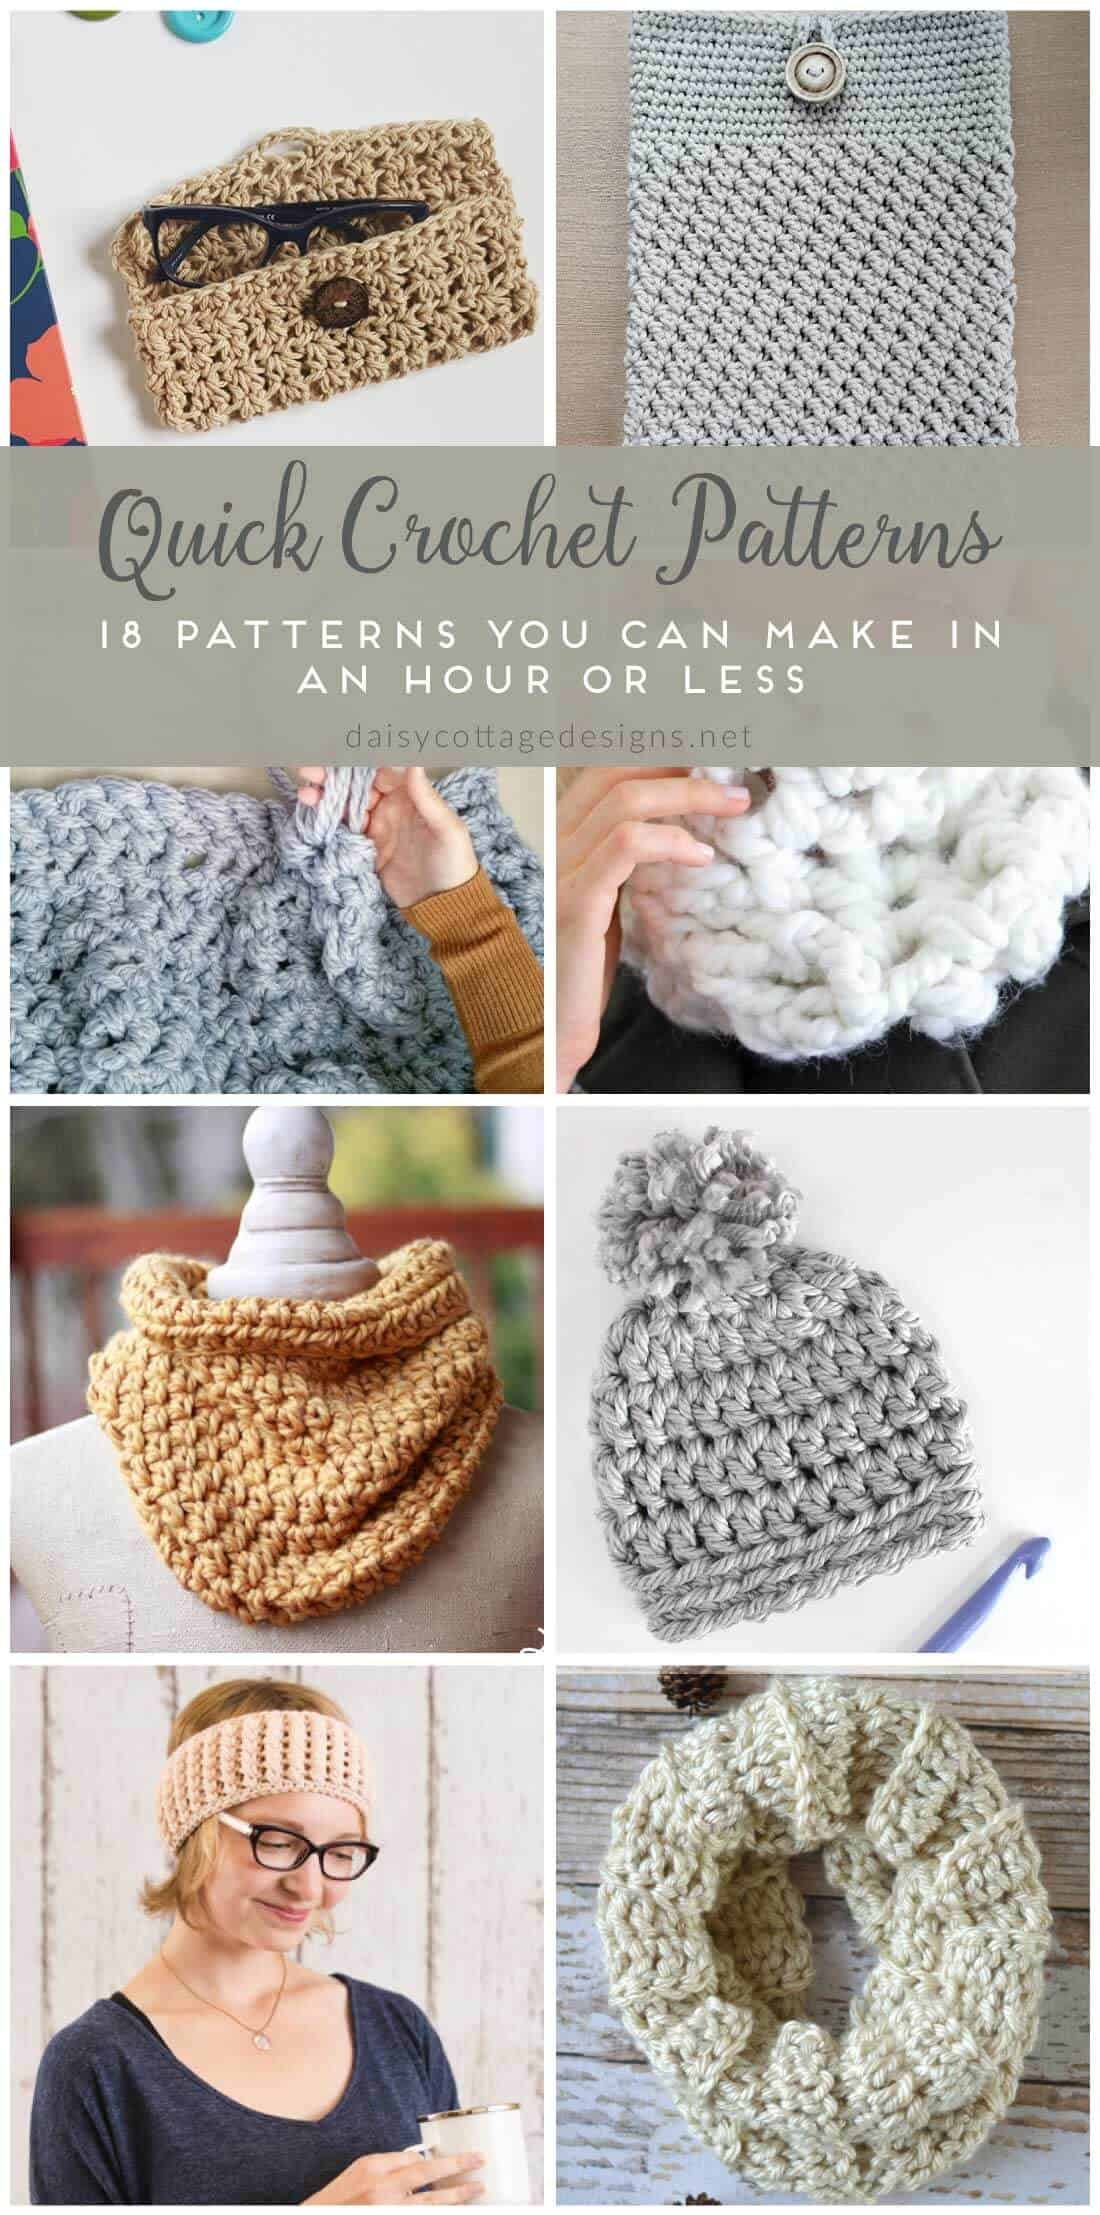 Easy Crochet Patterns - Free Crochet Patterns on Daisy ...